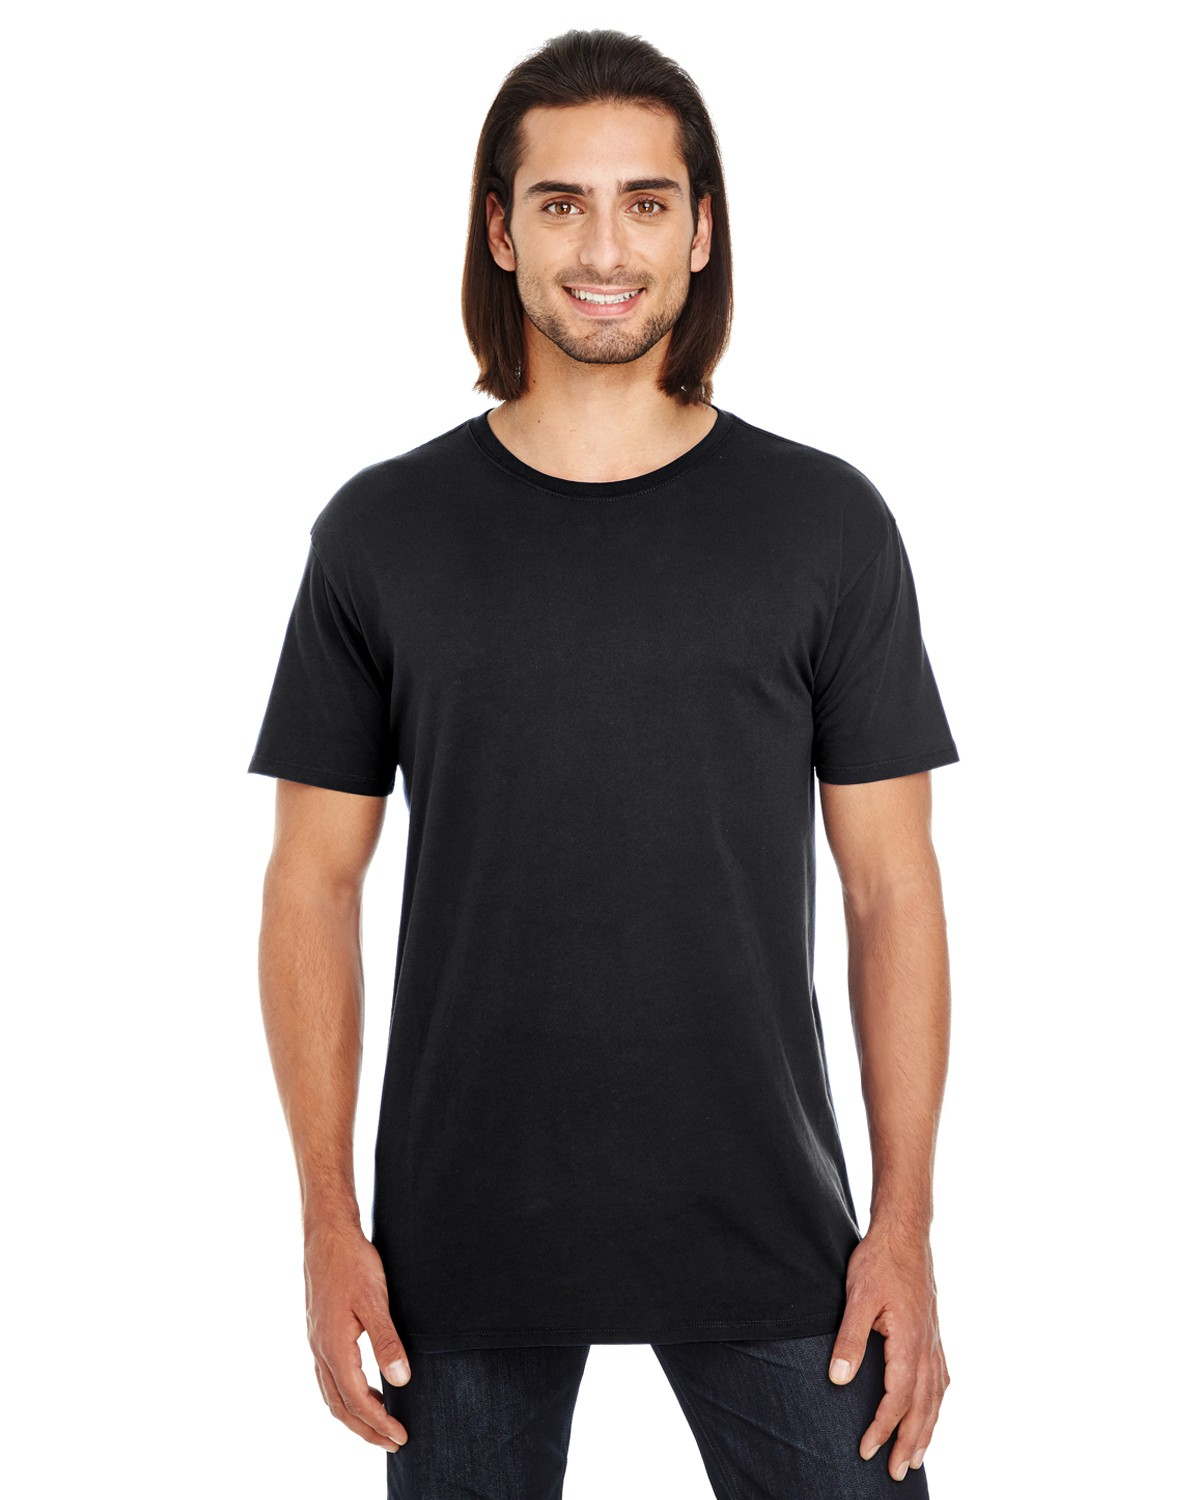 130A Threadfast Apparel BLACK